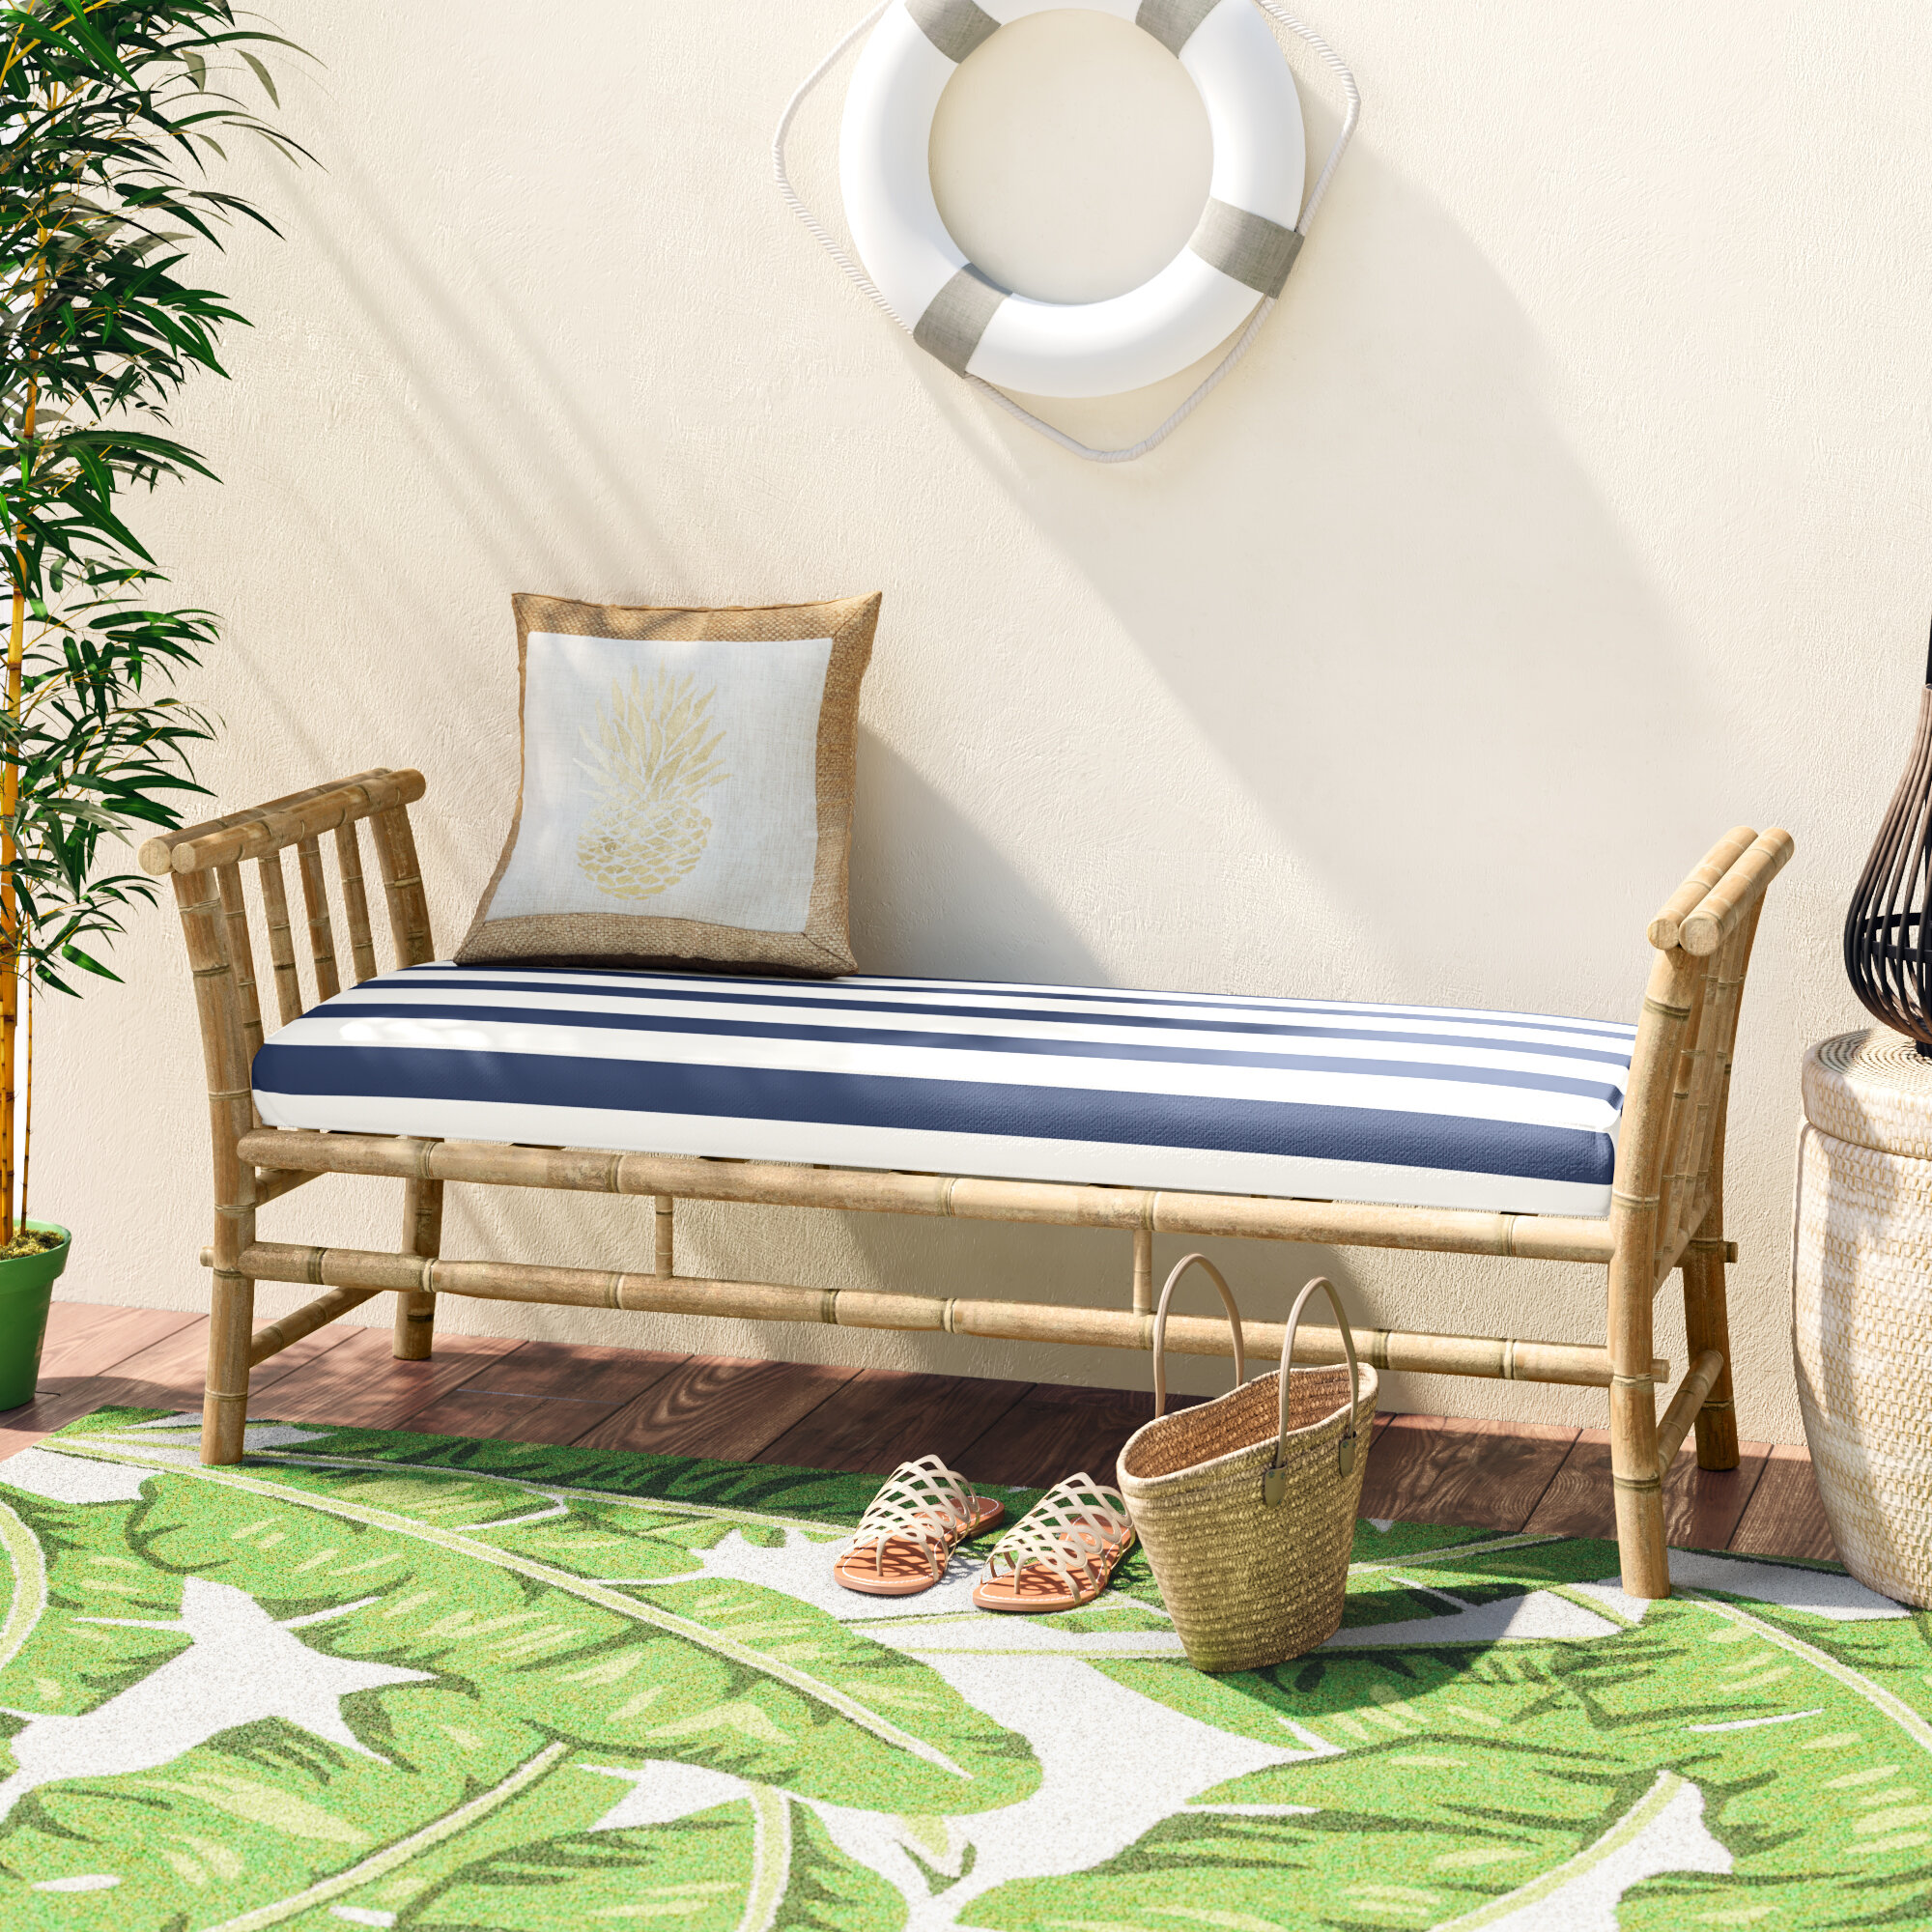 Bay Isle Home Grosvenor Bamboo Patio Daybed With Mattress Reviews Wayfair